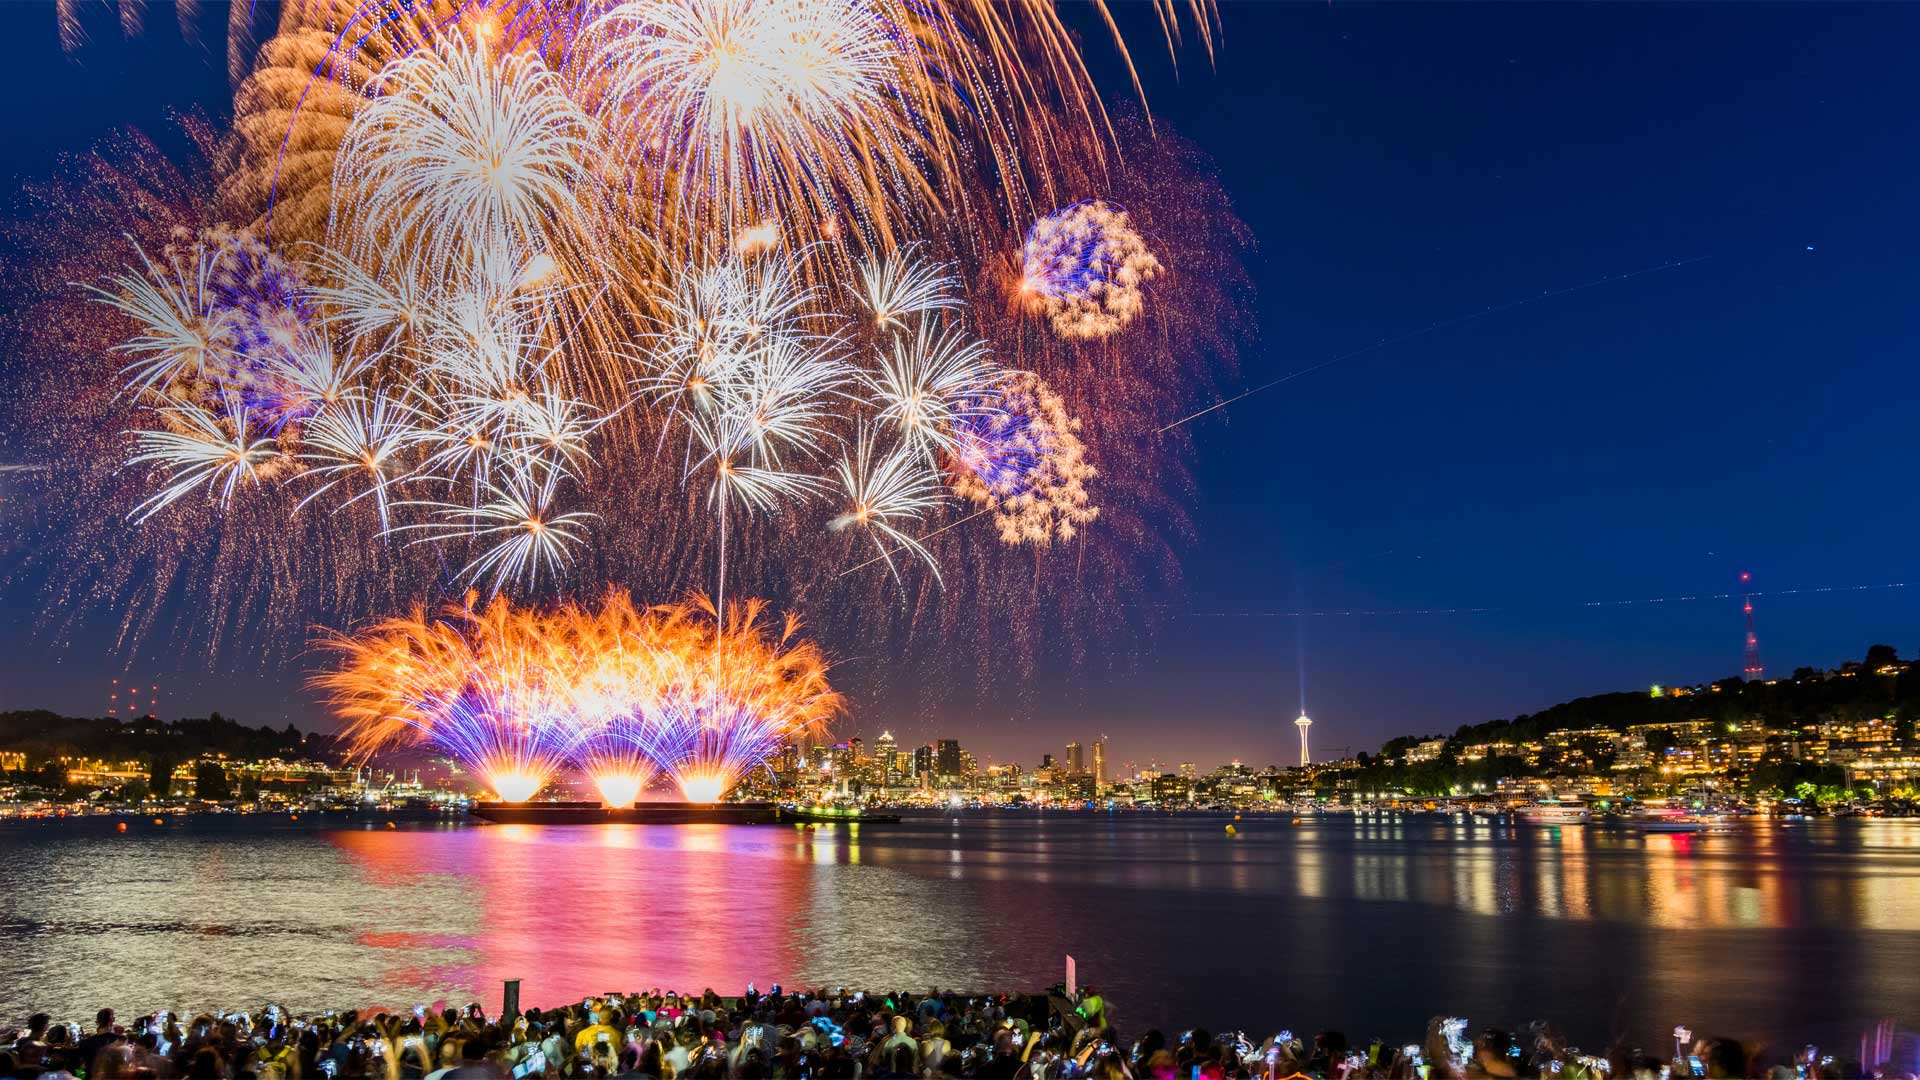 July 4th fireworks over Lake Union, Seattle (© Onest Mistic/Getty Images)(Bing United States)